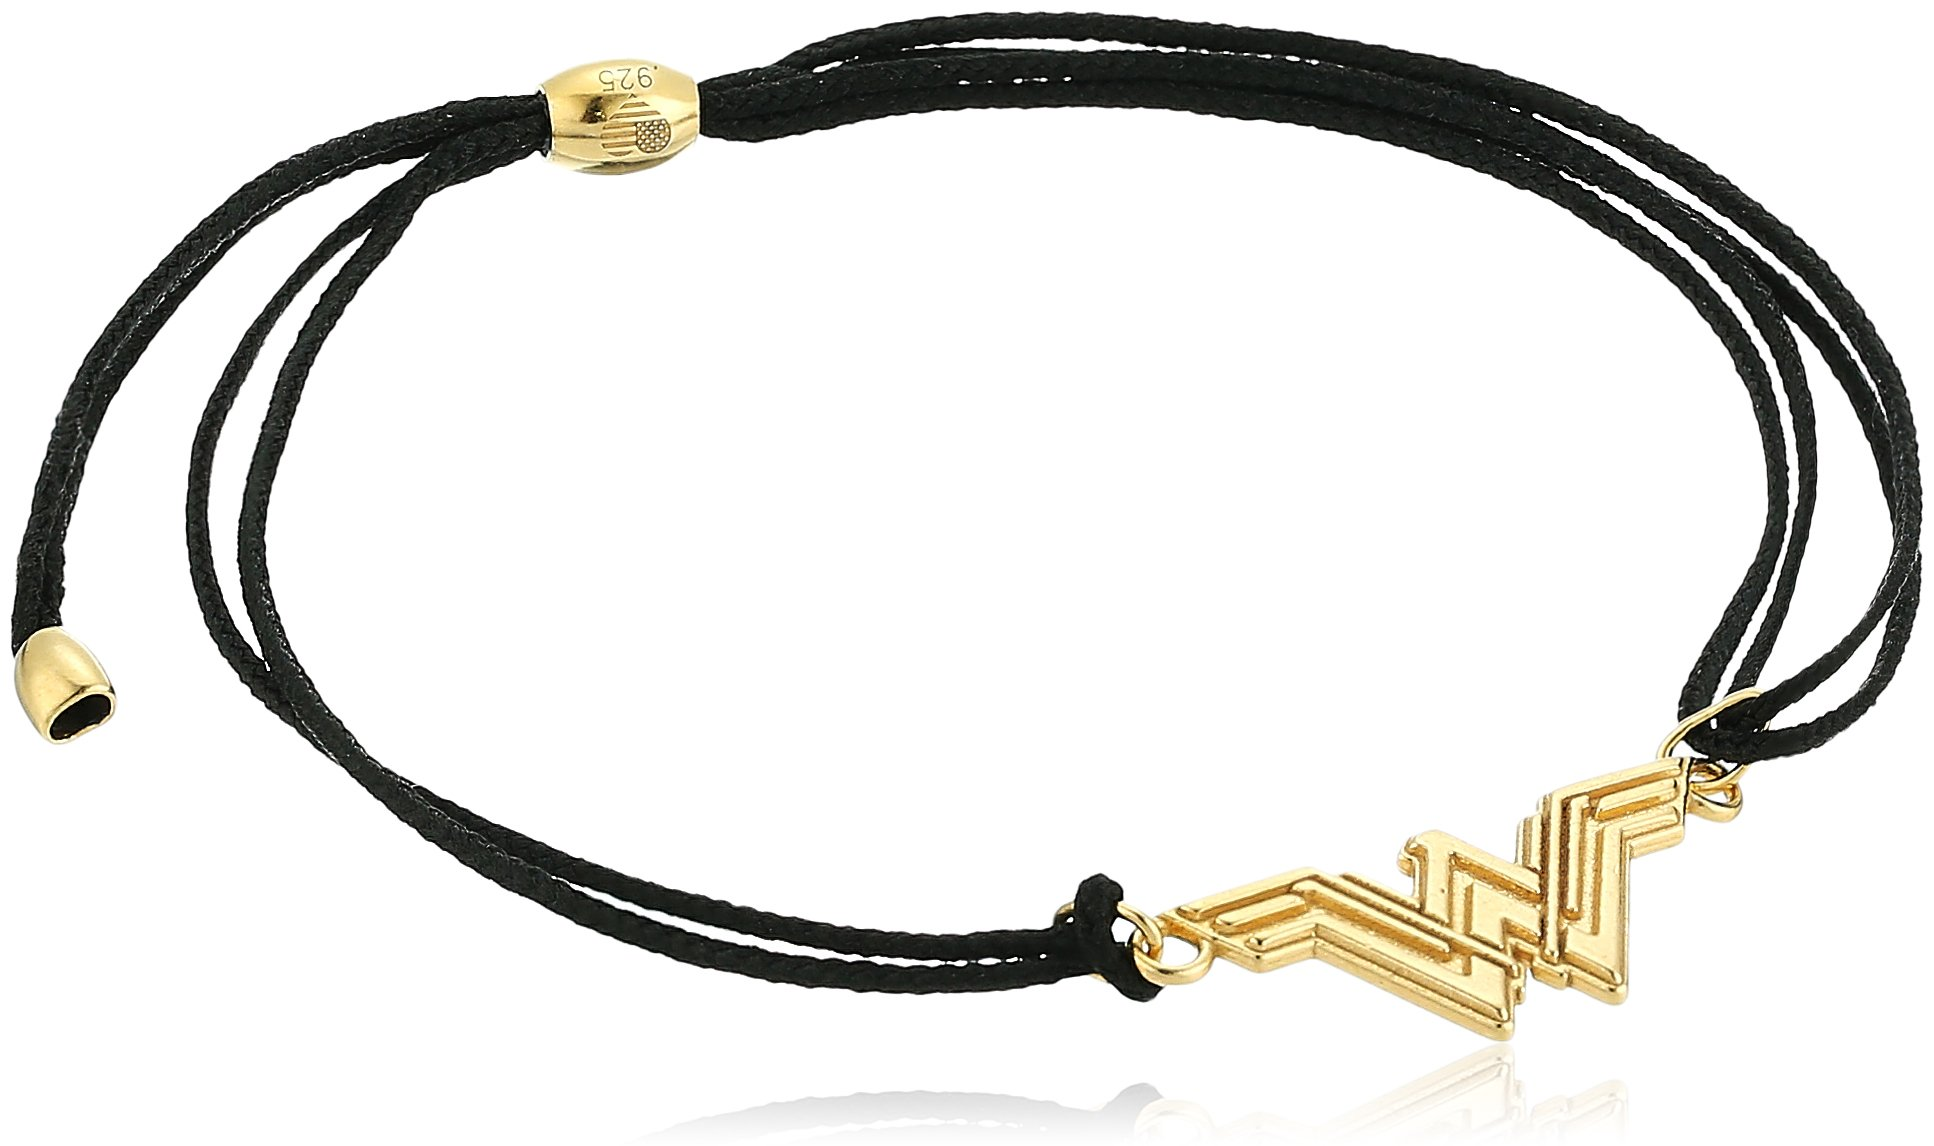 Alex and Ani Kindred Cord, Wonder Woman Charm Bracelet